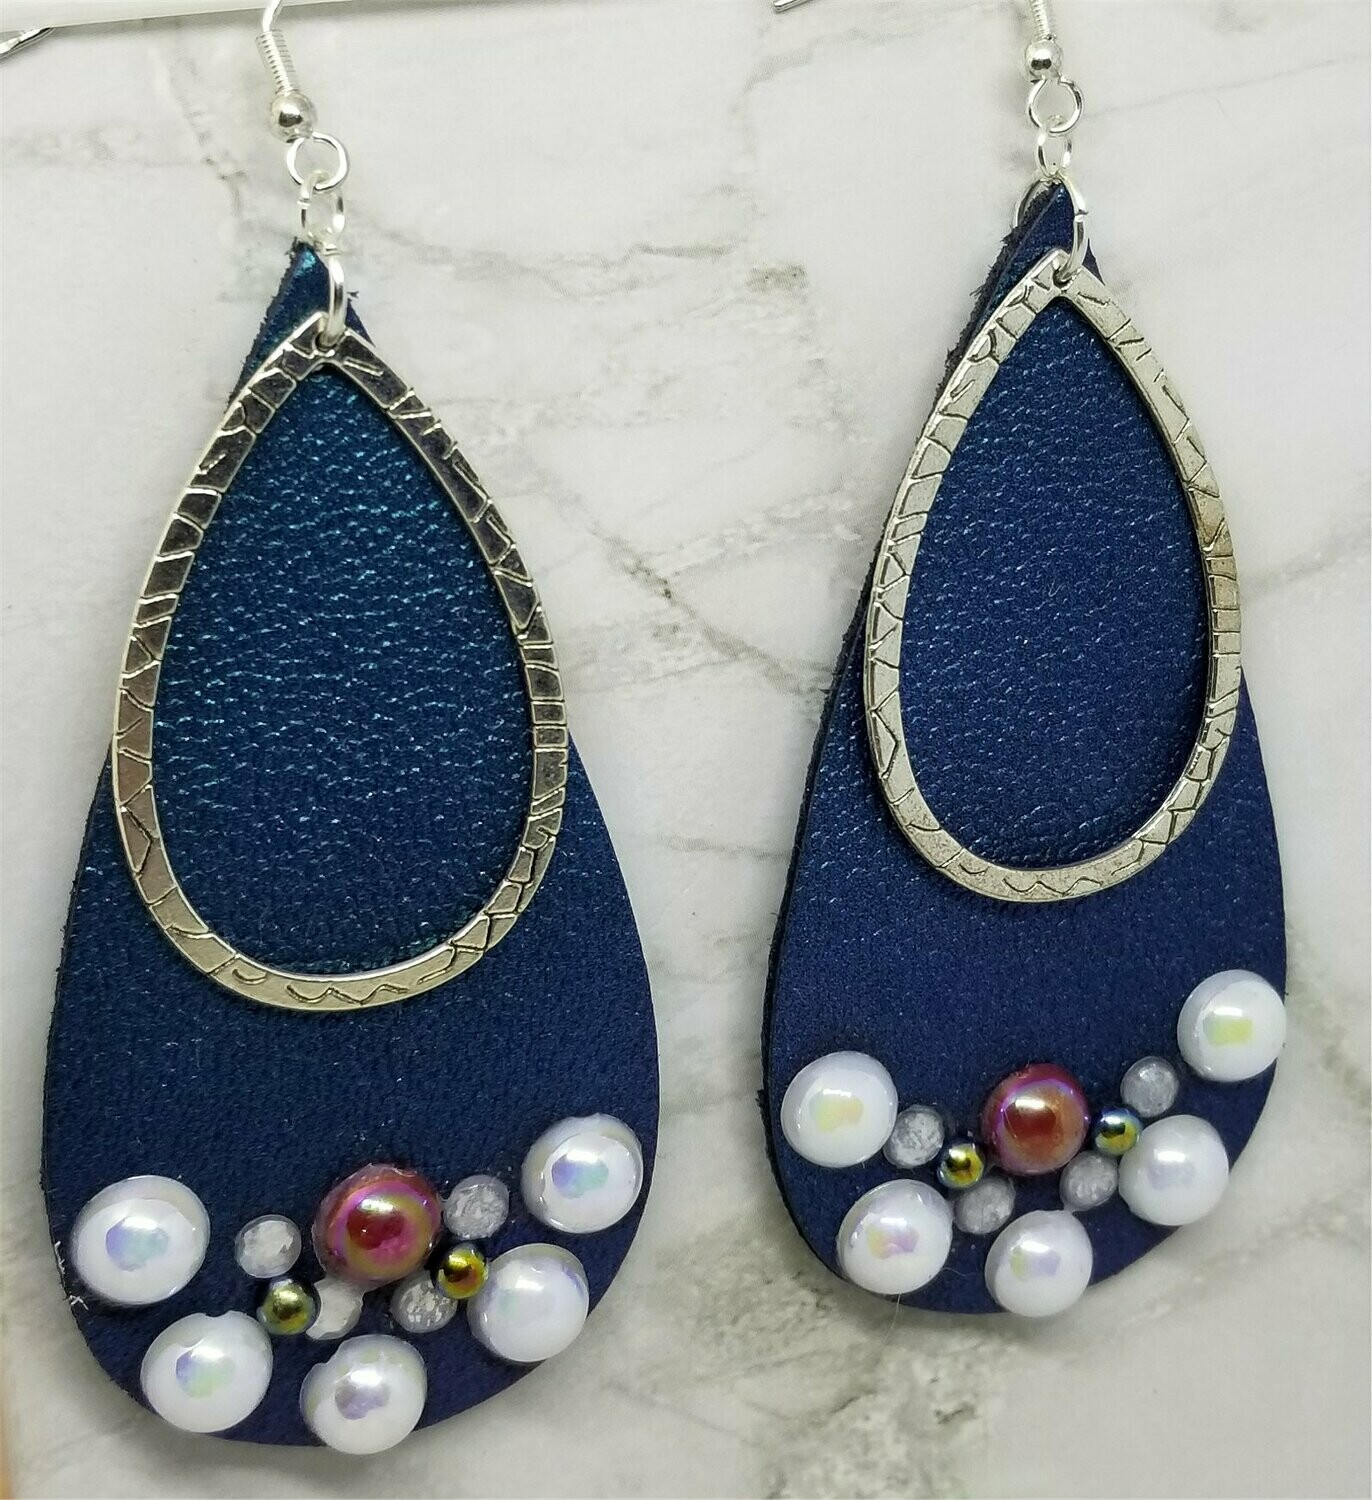 Blue Elongated Teardrop Shaped Real Leather Earrings with Teardrop Overlay and Pearl Rhinestone Embellishments